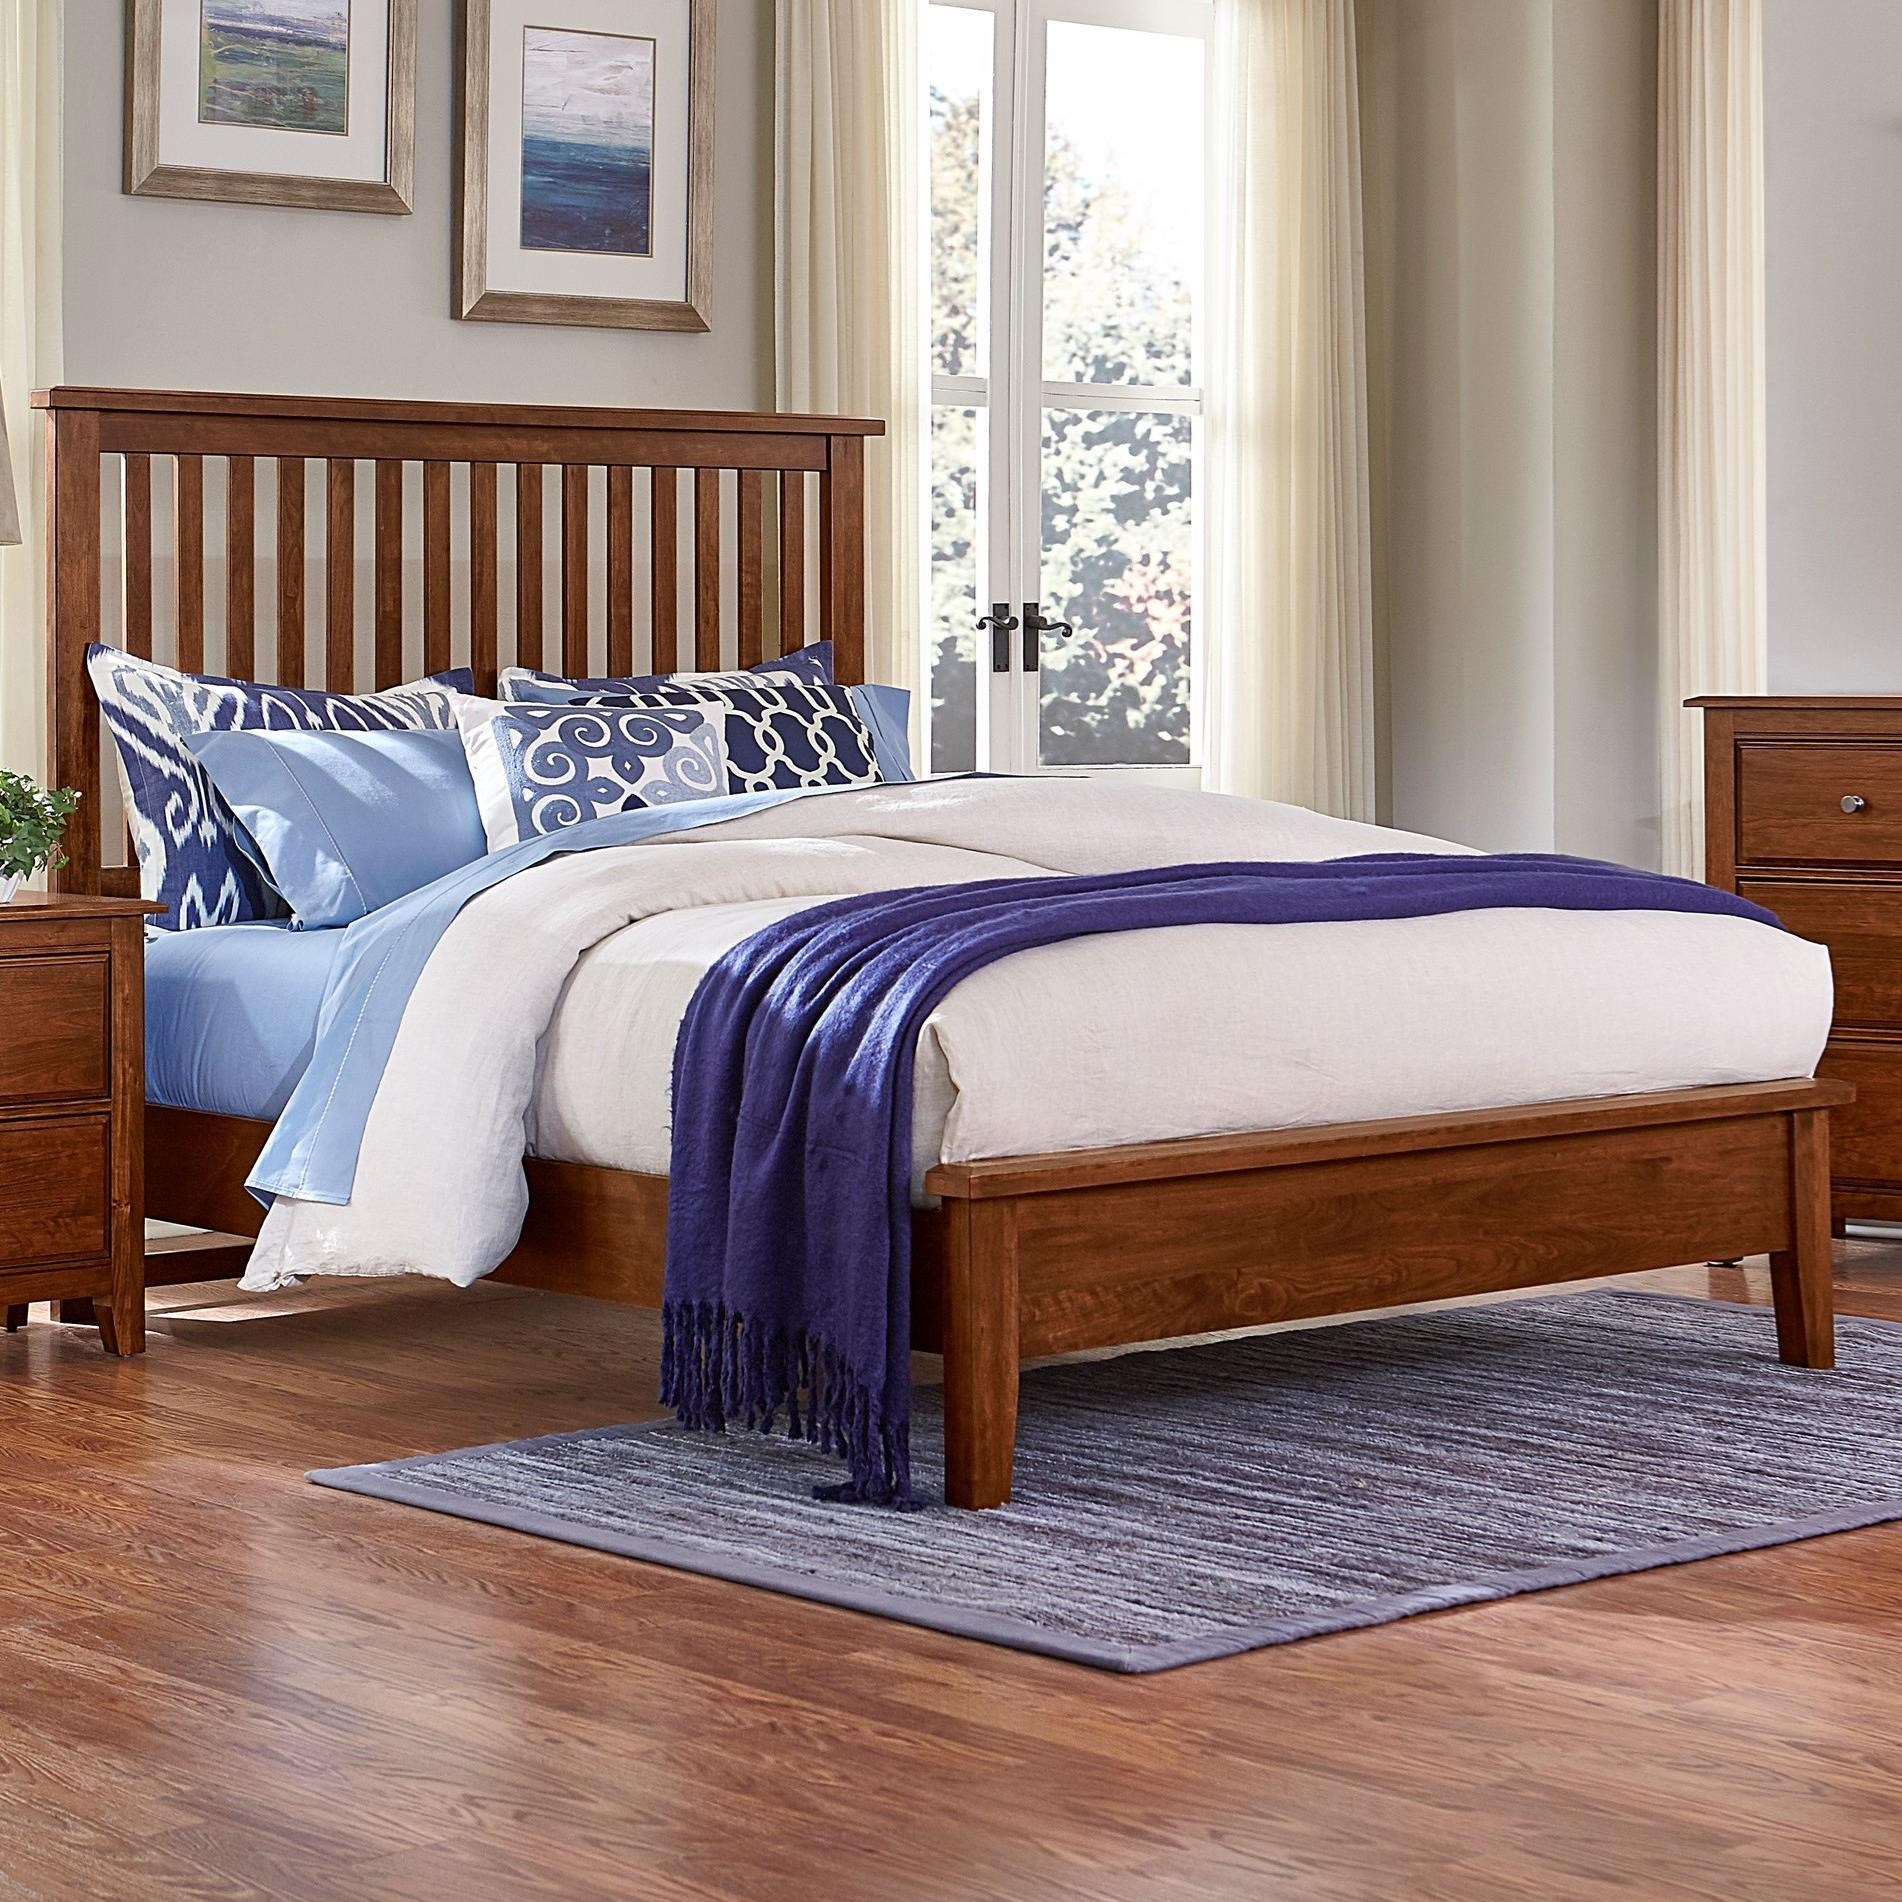 Artisan Choices King Slat Bed with Low Profile Footboard by Artisan & Post at Zak's Home